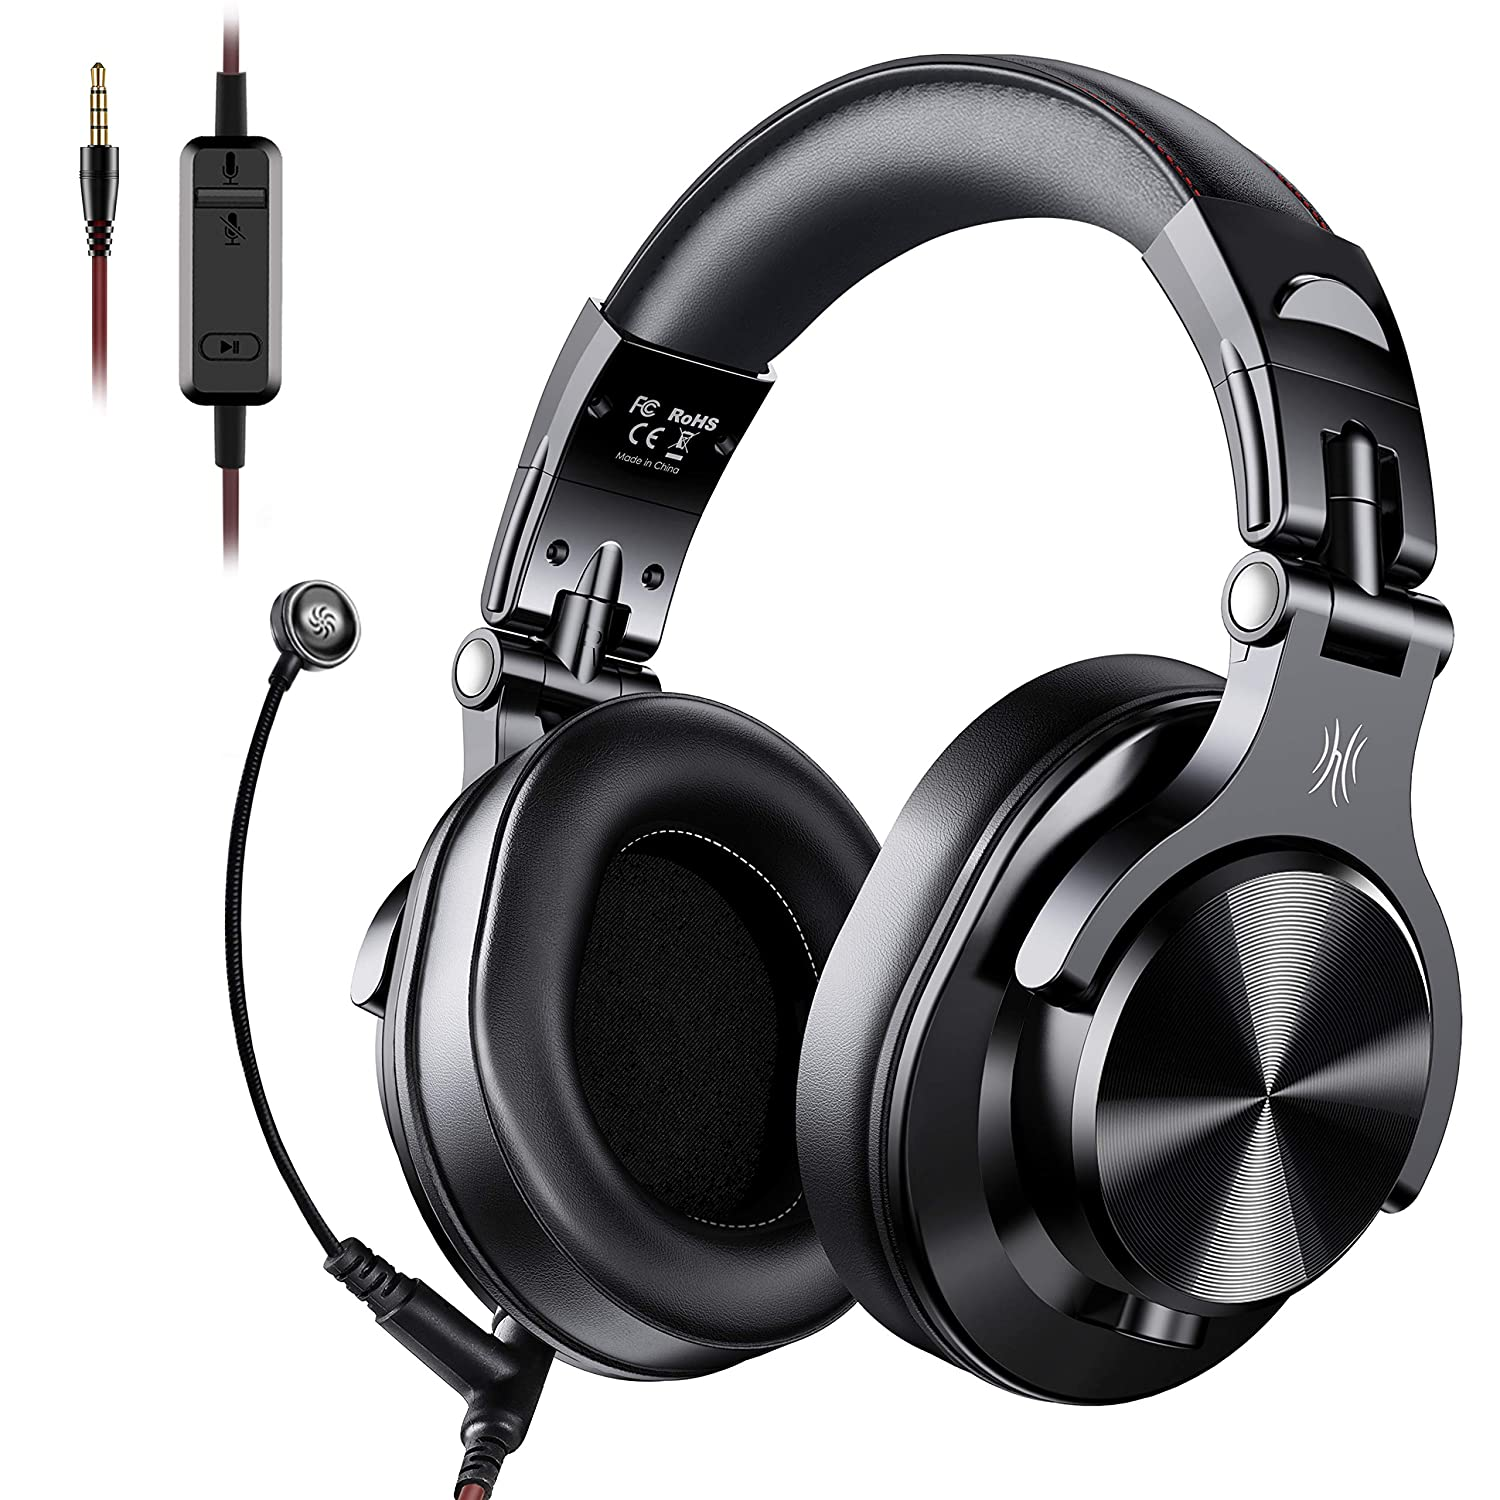 OneOdio A71 Over Ear Gaming Headsets - PS4 Xbox One Nintendo Switch PC Wired Stereo Headsets with Boom Mic and On-Line Volume & Share-Port Studio Headphones for Office Phone Call DJ